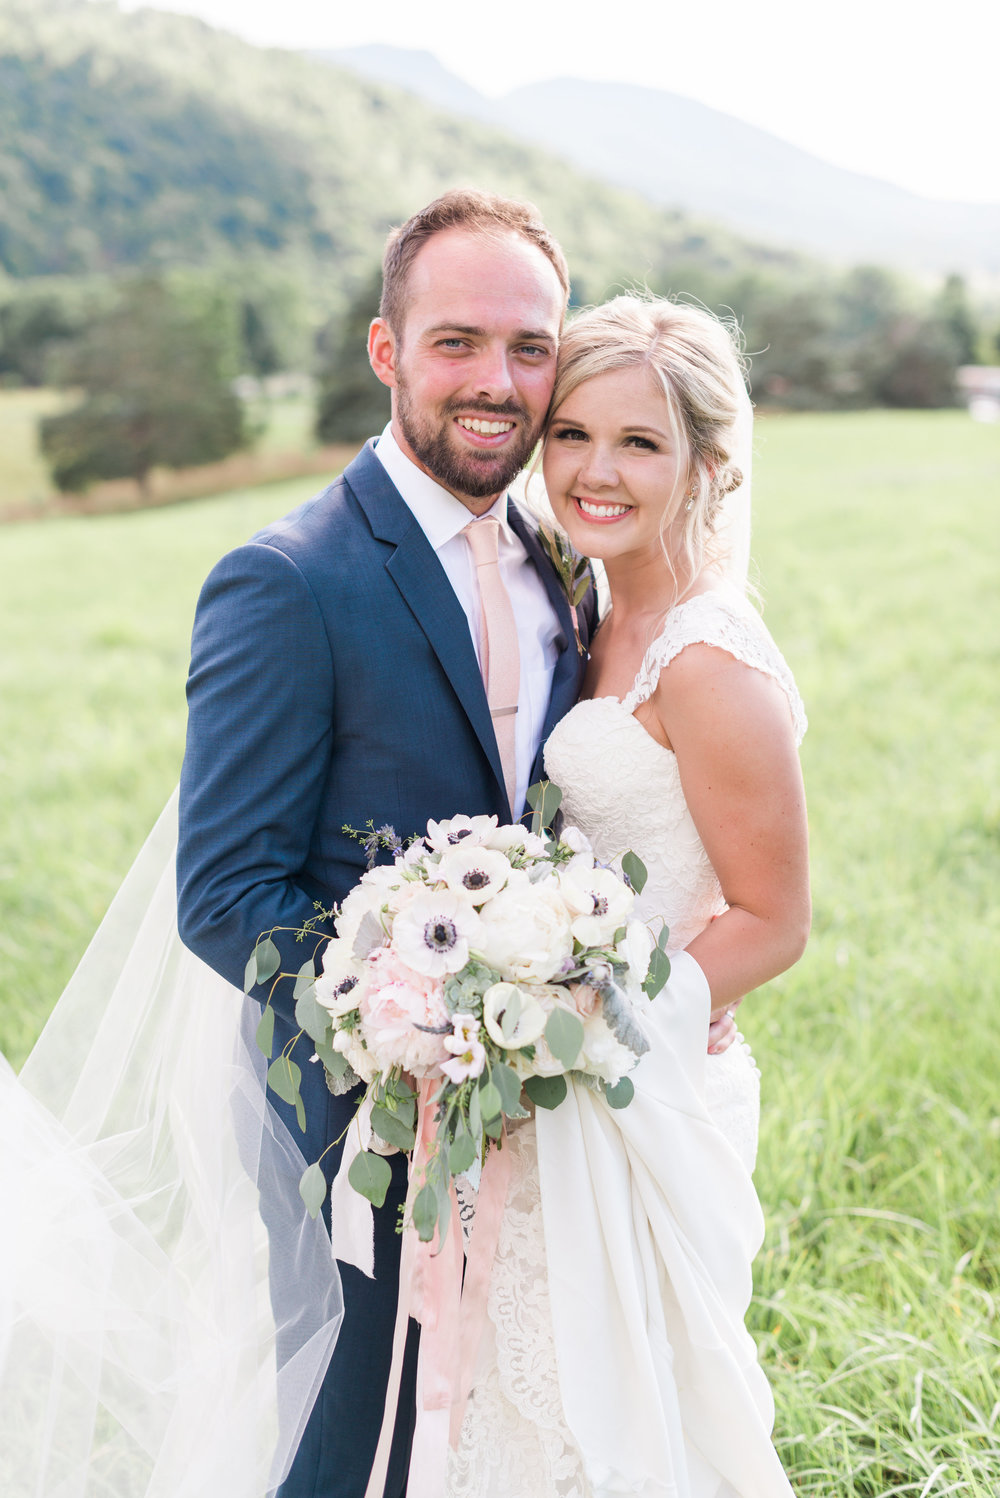 Courtney Inghram Virginia Wedding Florist Big Spring Farm Lexington, Virginia